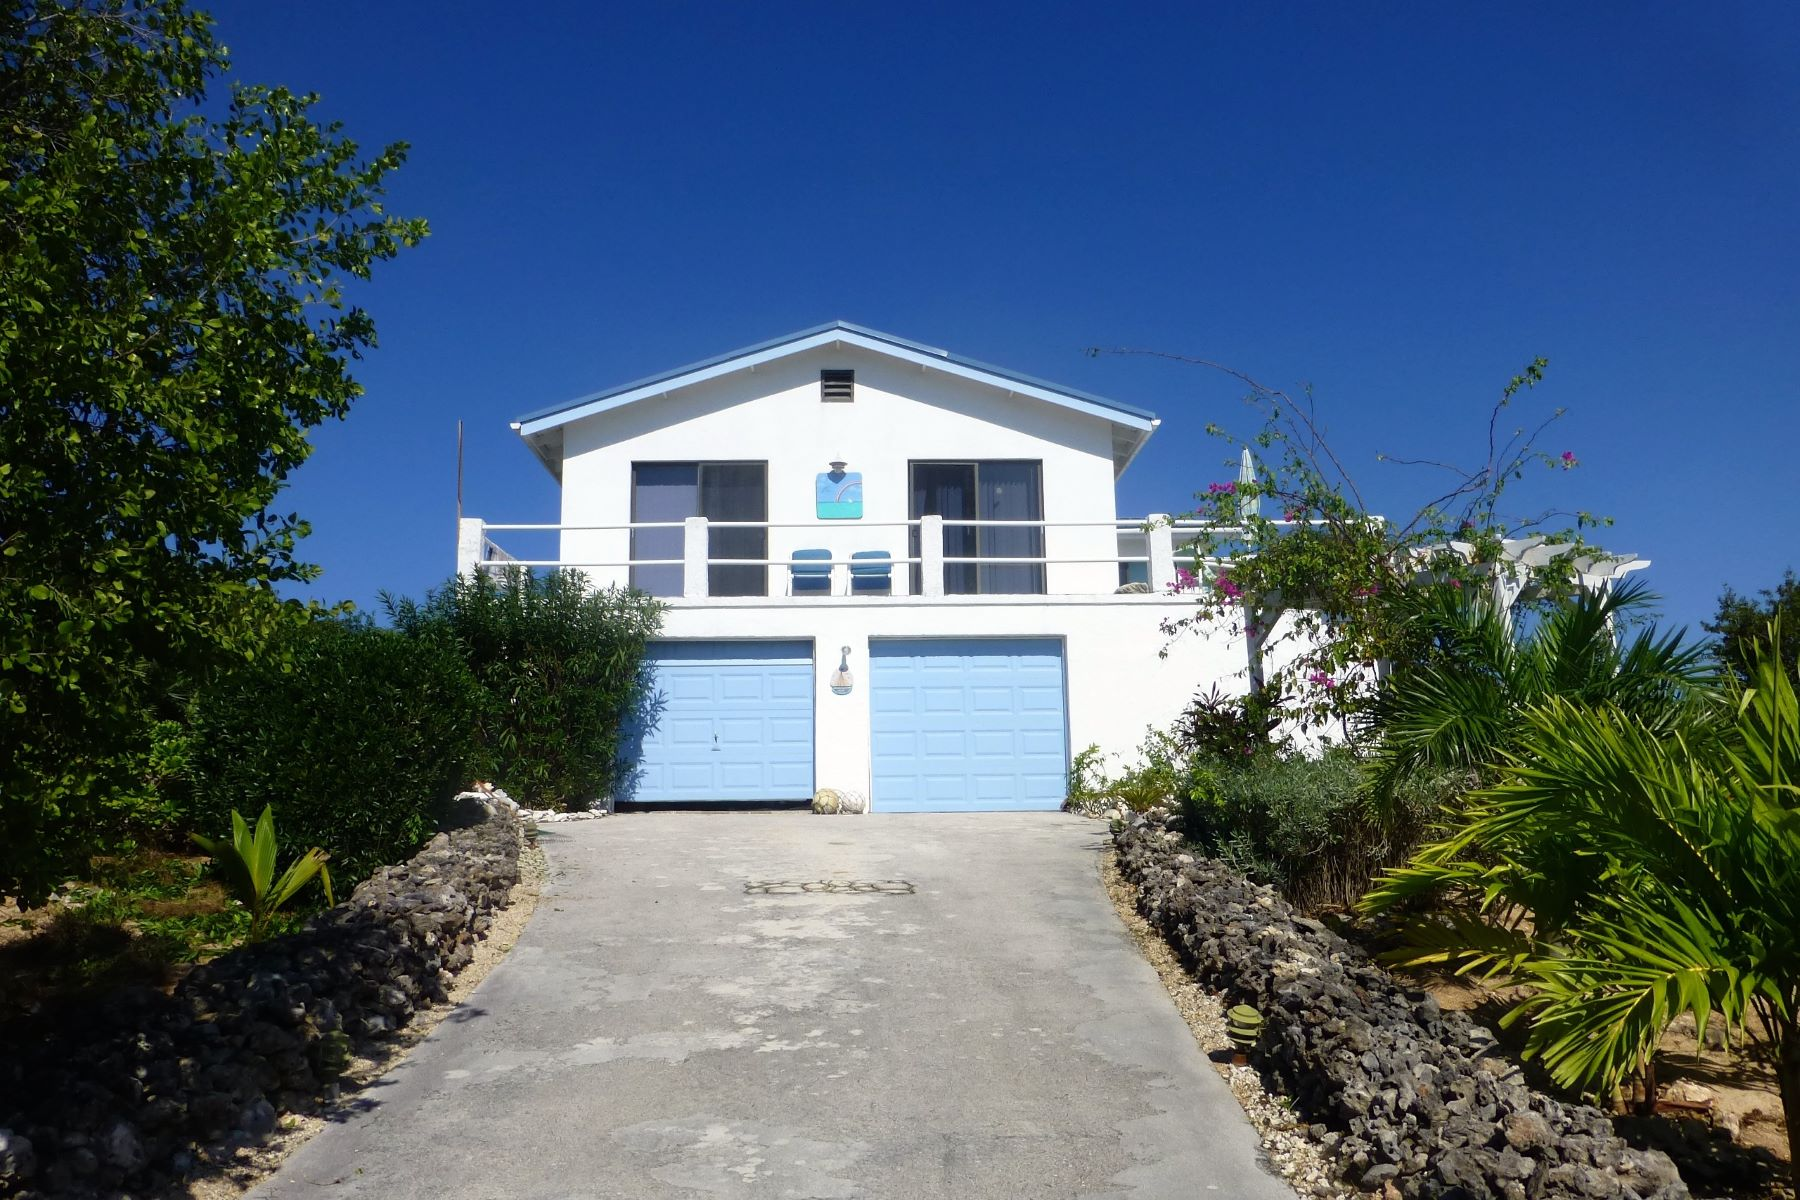 Maison unifamiliale pour l à vendre à Rainbows End Rainbow Bay, Eleuthera, Bahamas